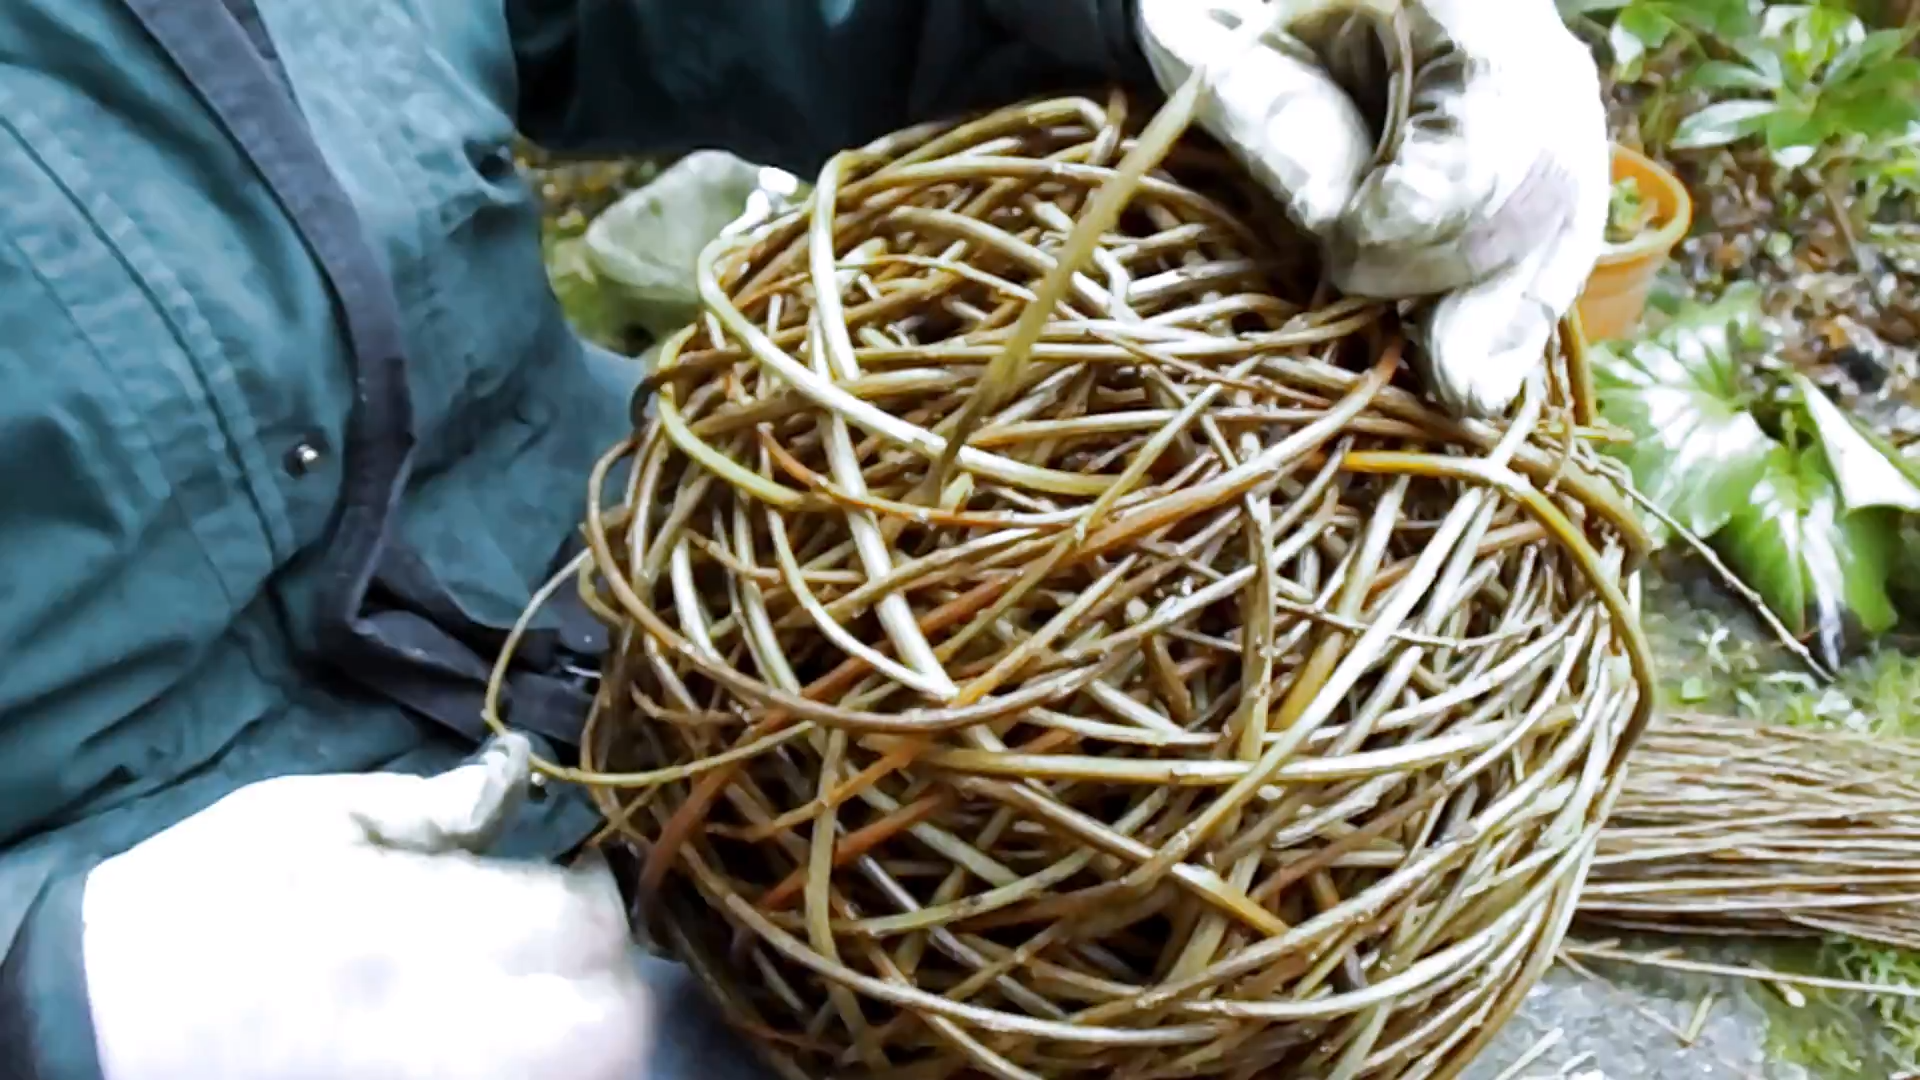 Willow Ball - Weaving